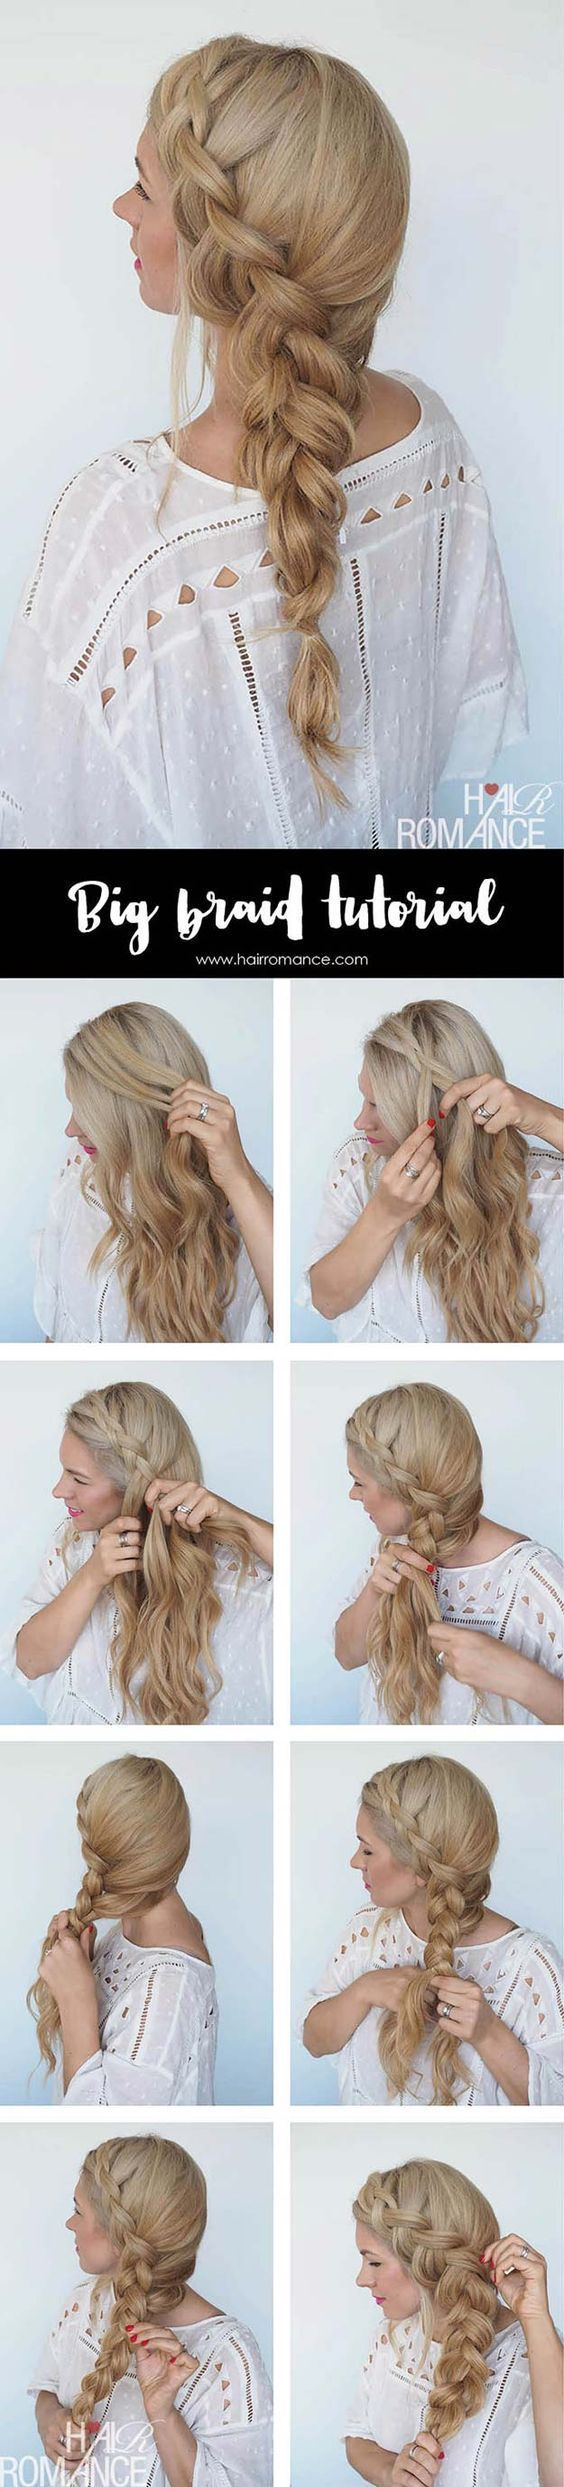 70 Flawless And Trending Side Braids Styles to Try Out. The one pictured would make such a great wedding hairstyle for a boho or rustic bride!